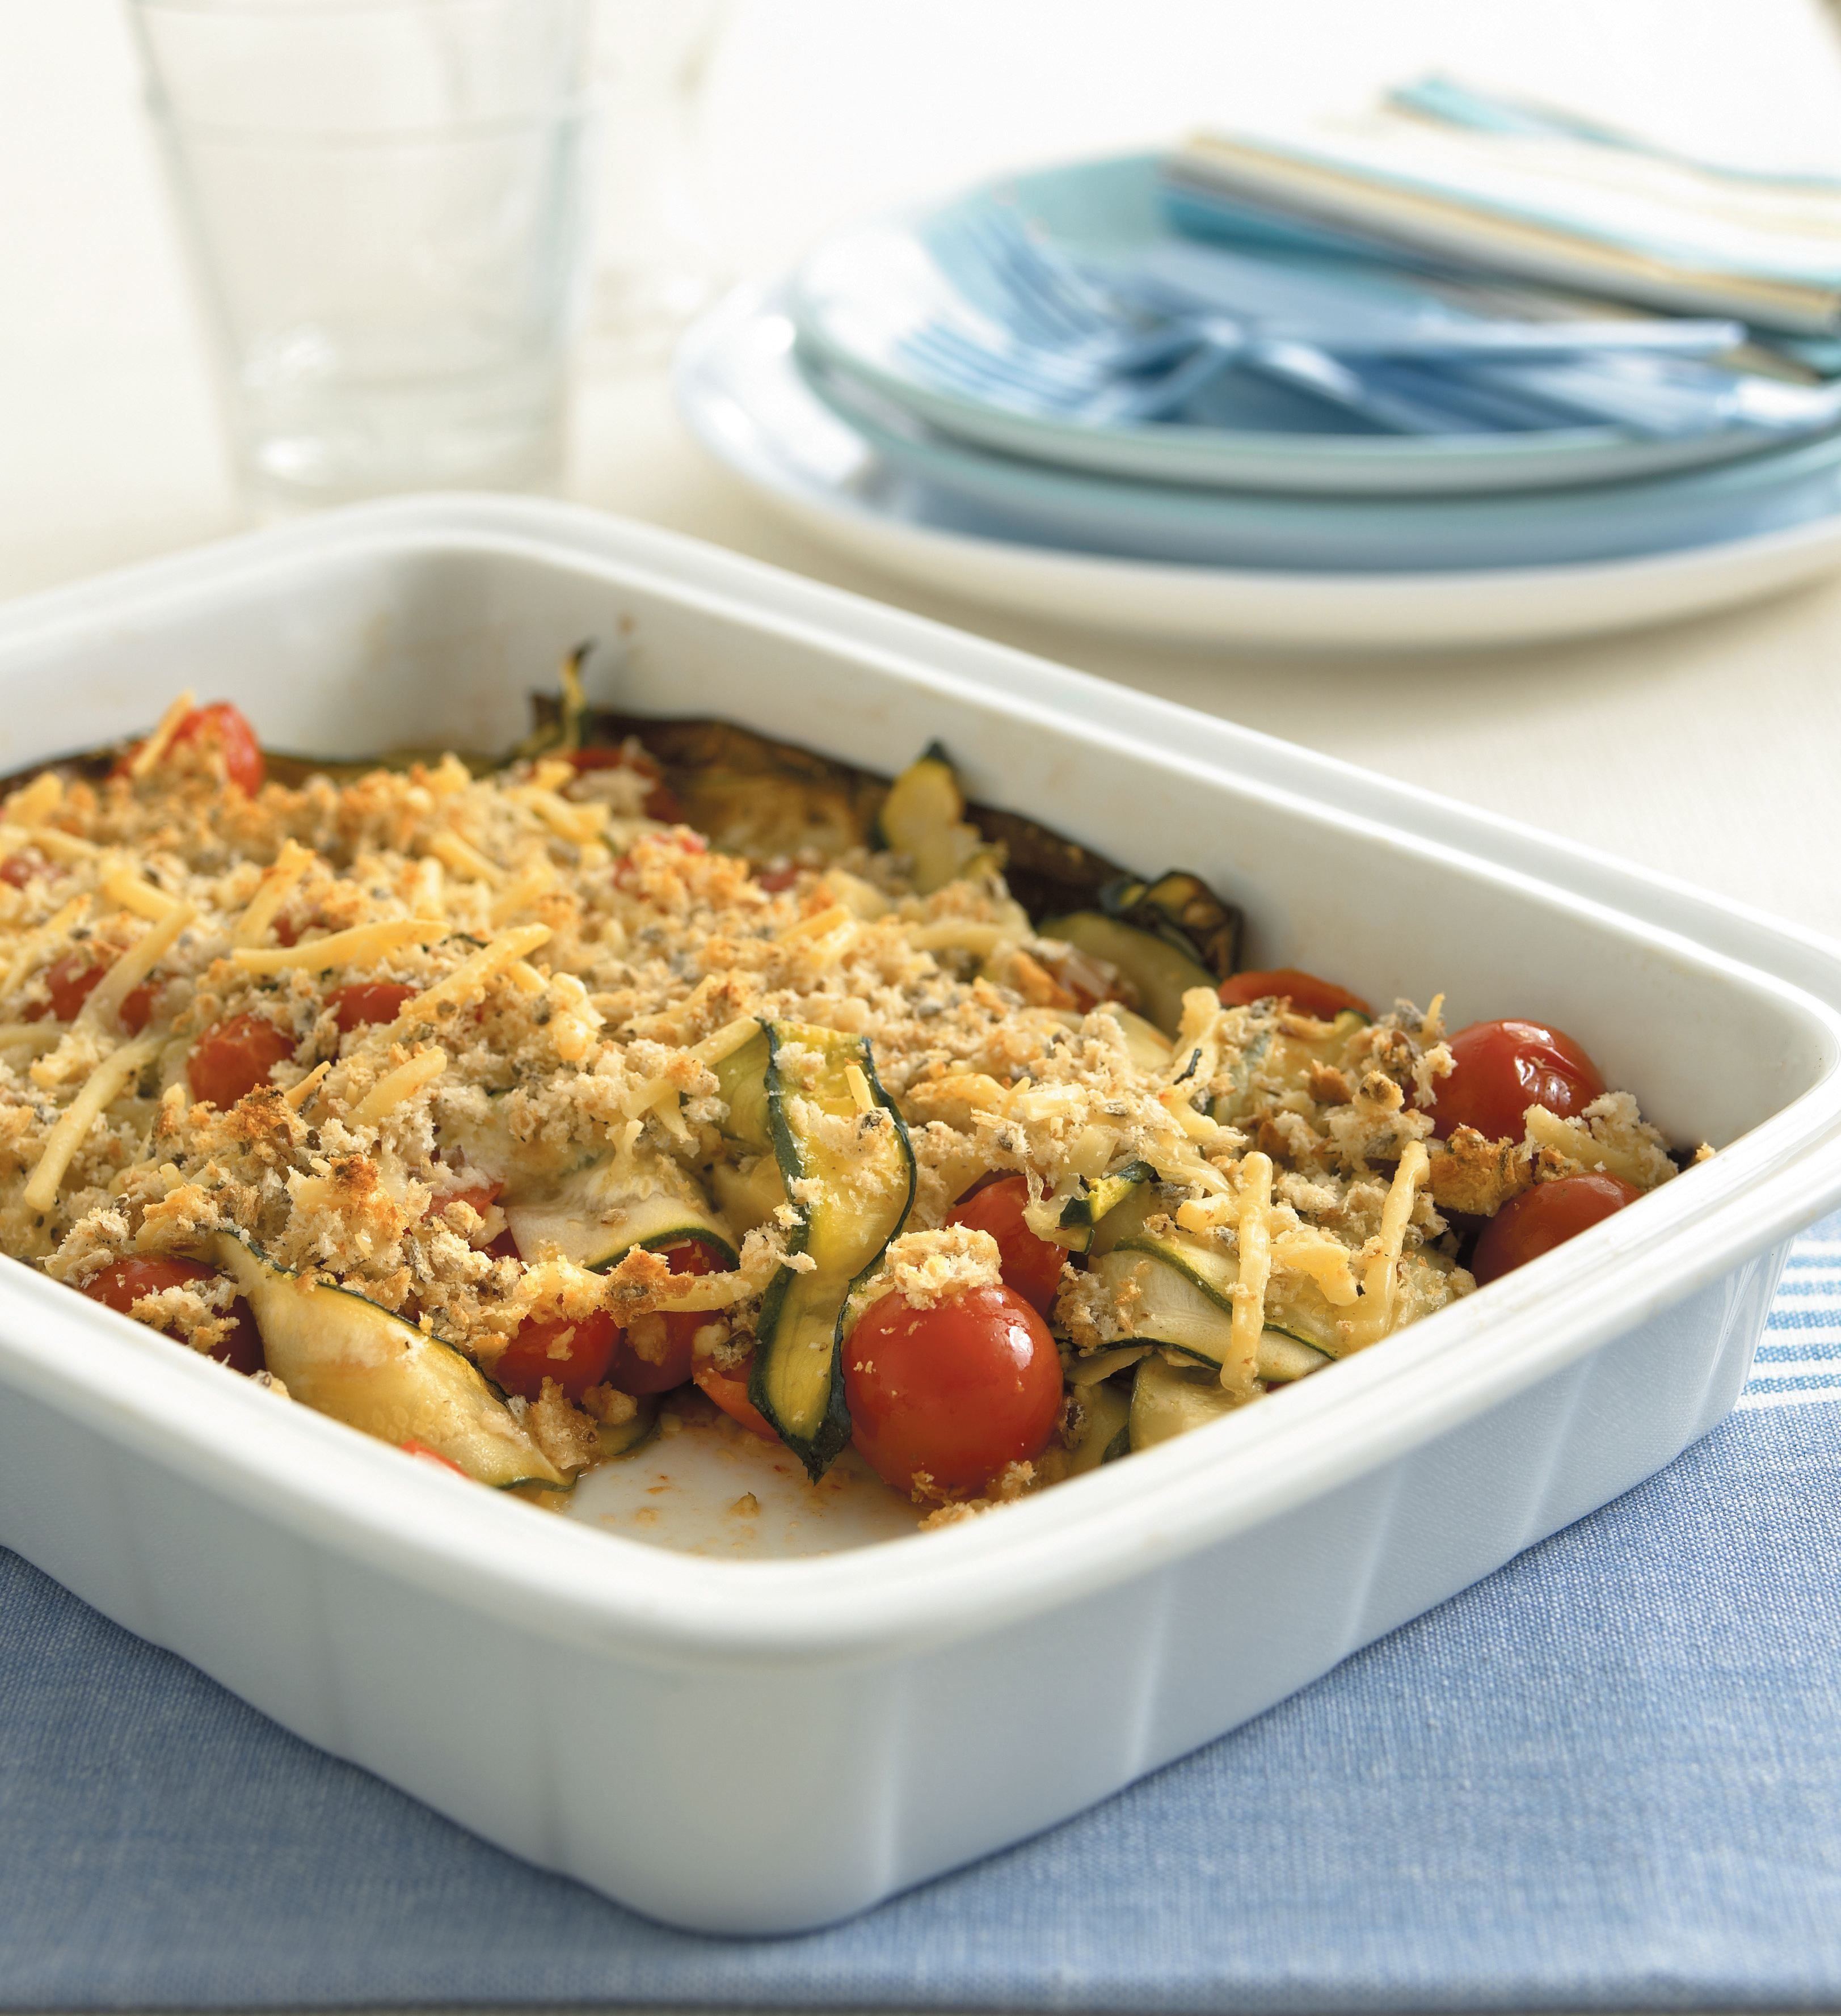 Cherry tomato and zucchini bake